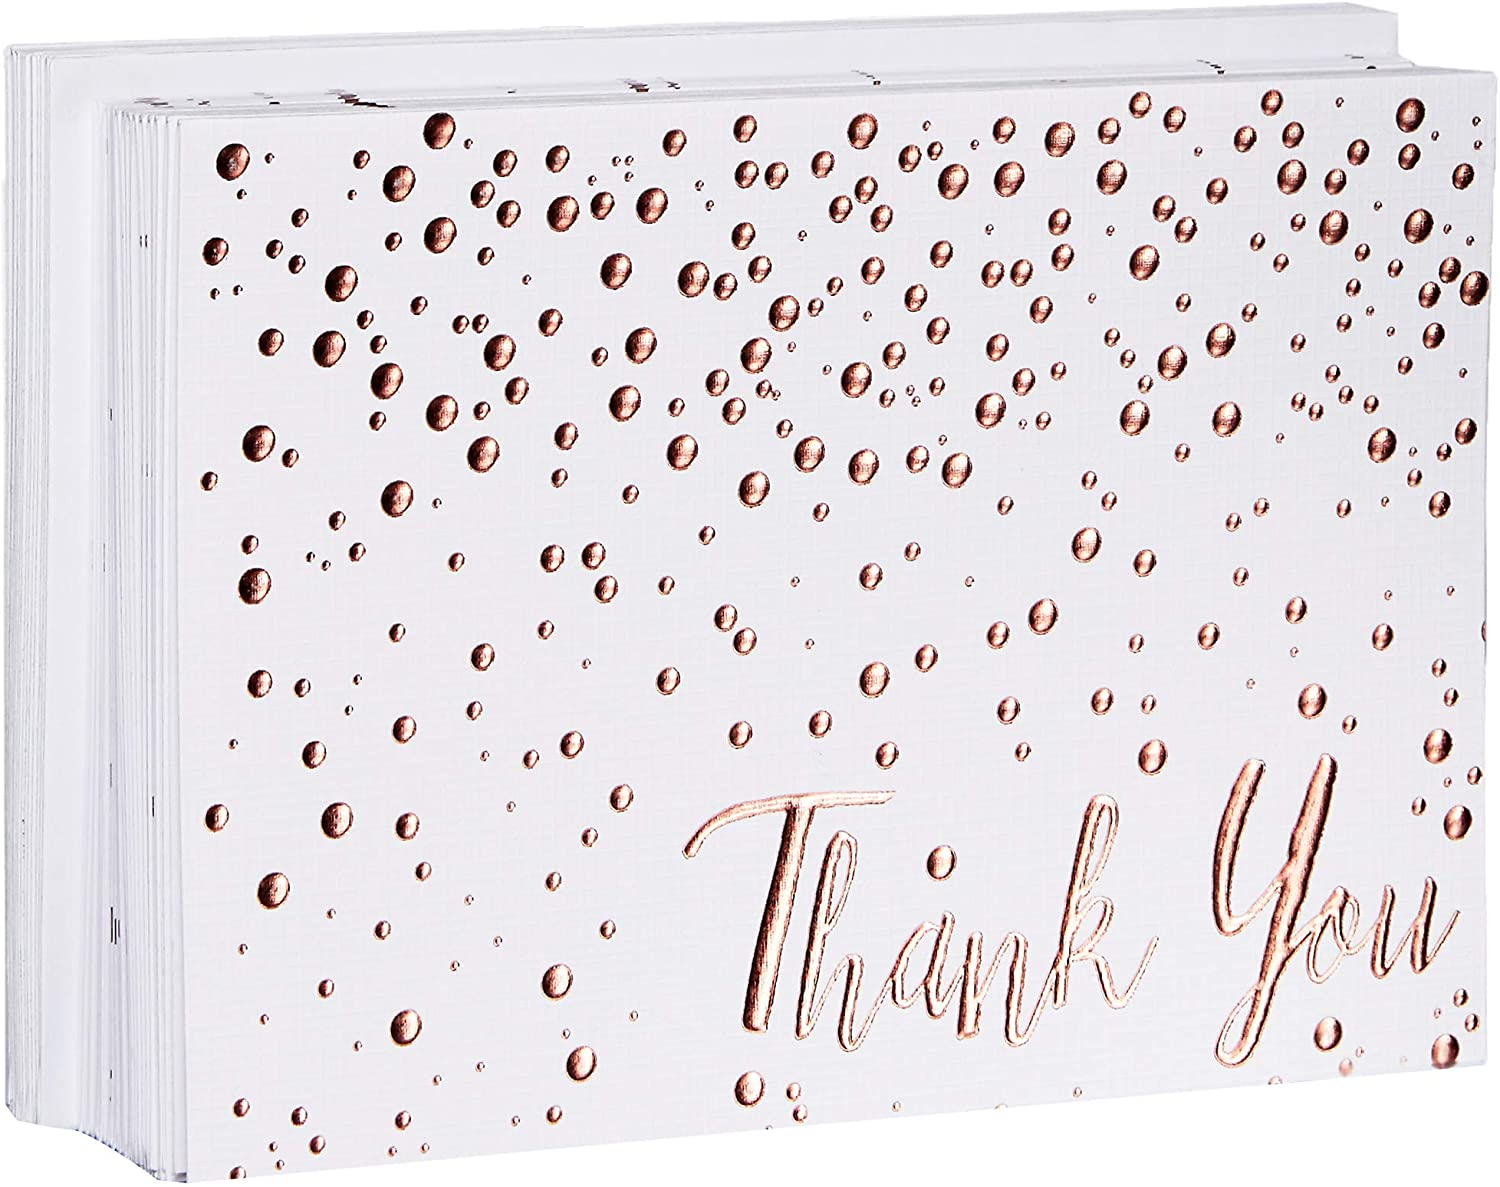 Thank You Cards - 20 Pack of (A7) 5x7 Rose Gold Confetti Premium Heavyweight Cards and Rose Gold Foil Lined Envelopes - Large Enough To Include a 4x6 Photo Inside